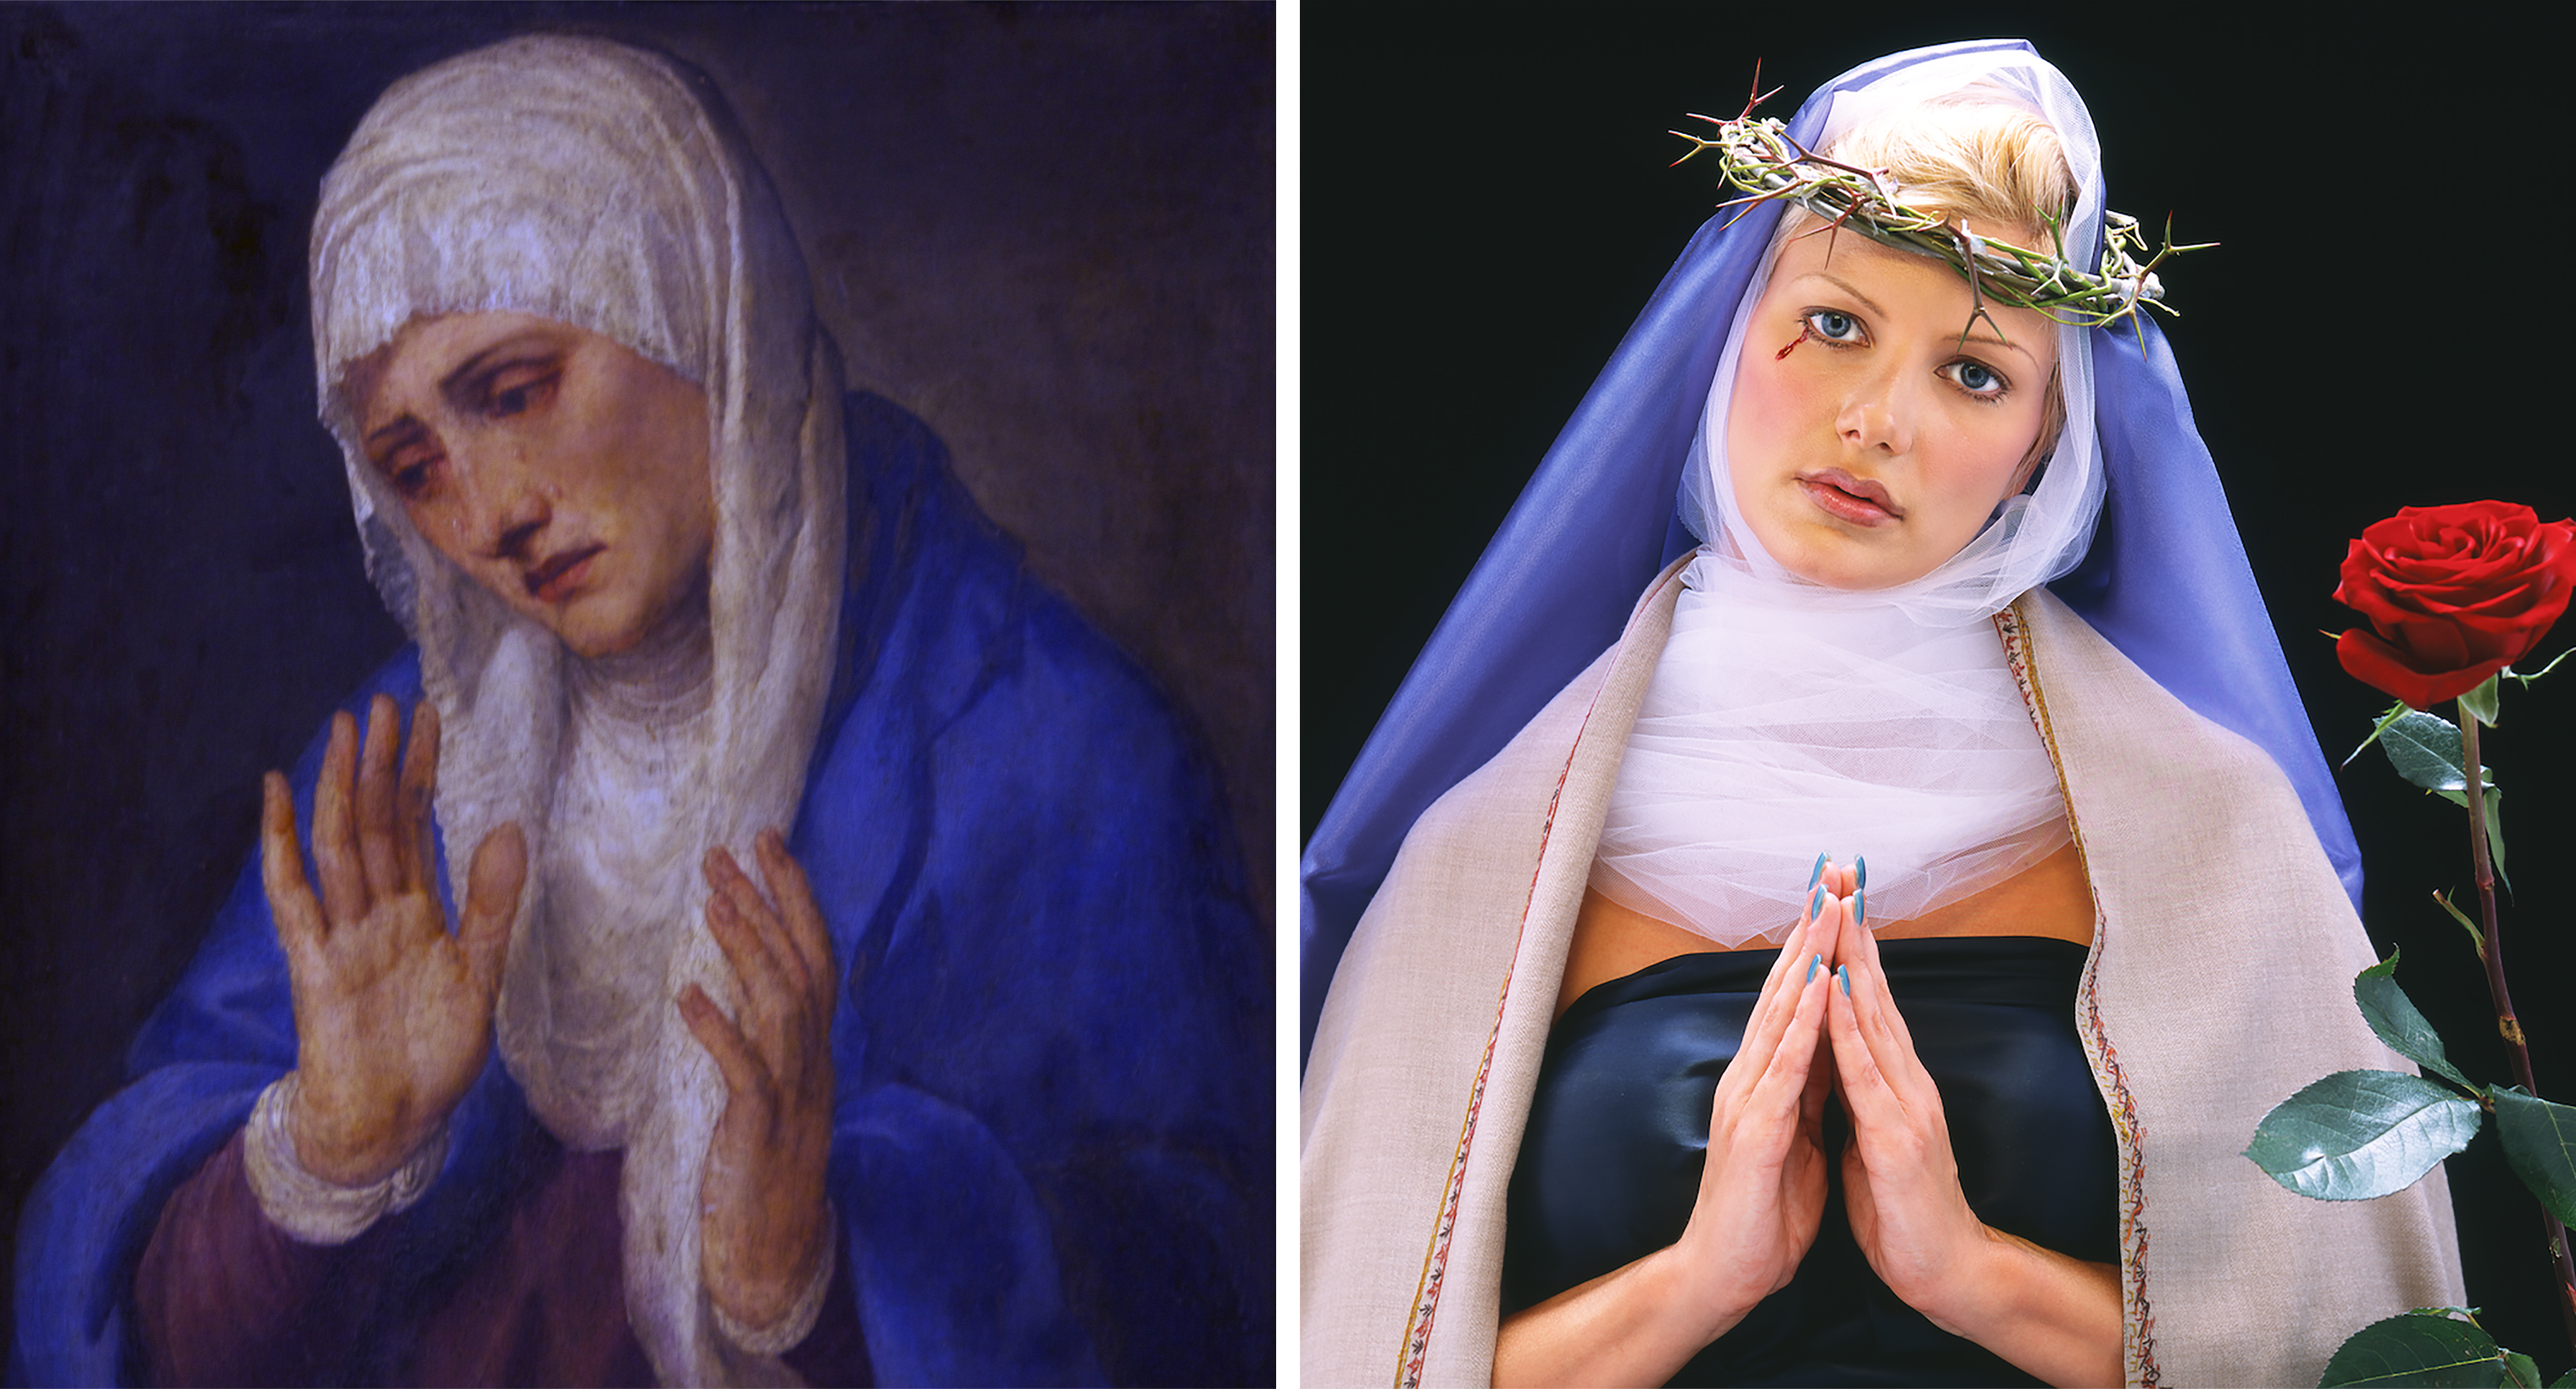 Left: Titian, The Virgin Dolorosa With her Hands Apart, 1555 (Getty Images); Right: Nika Nesgoda, Nostra Domina Doloris, 2002